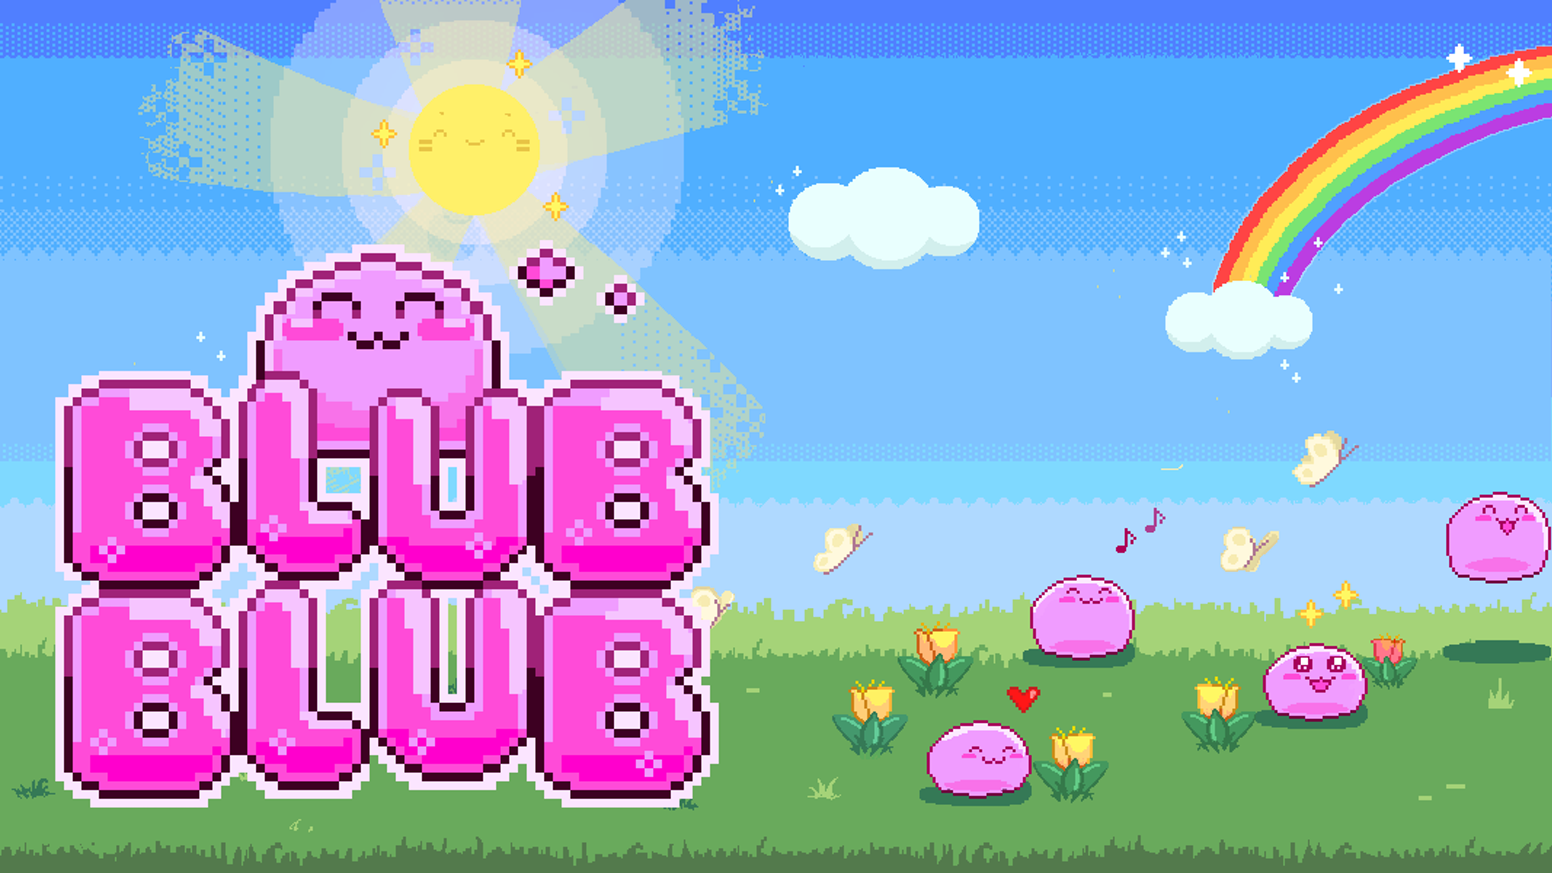 BlubBlub   GMG 2016 Grand Prize winner, check it out on  Kickstarter .  Get a free copy of the game here:  https://girlsmakegames.itch.io/blubblub